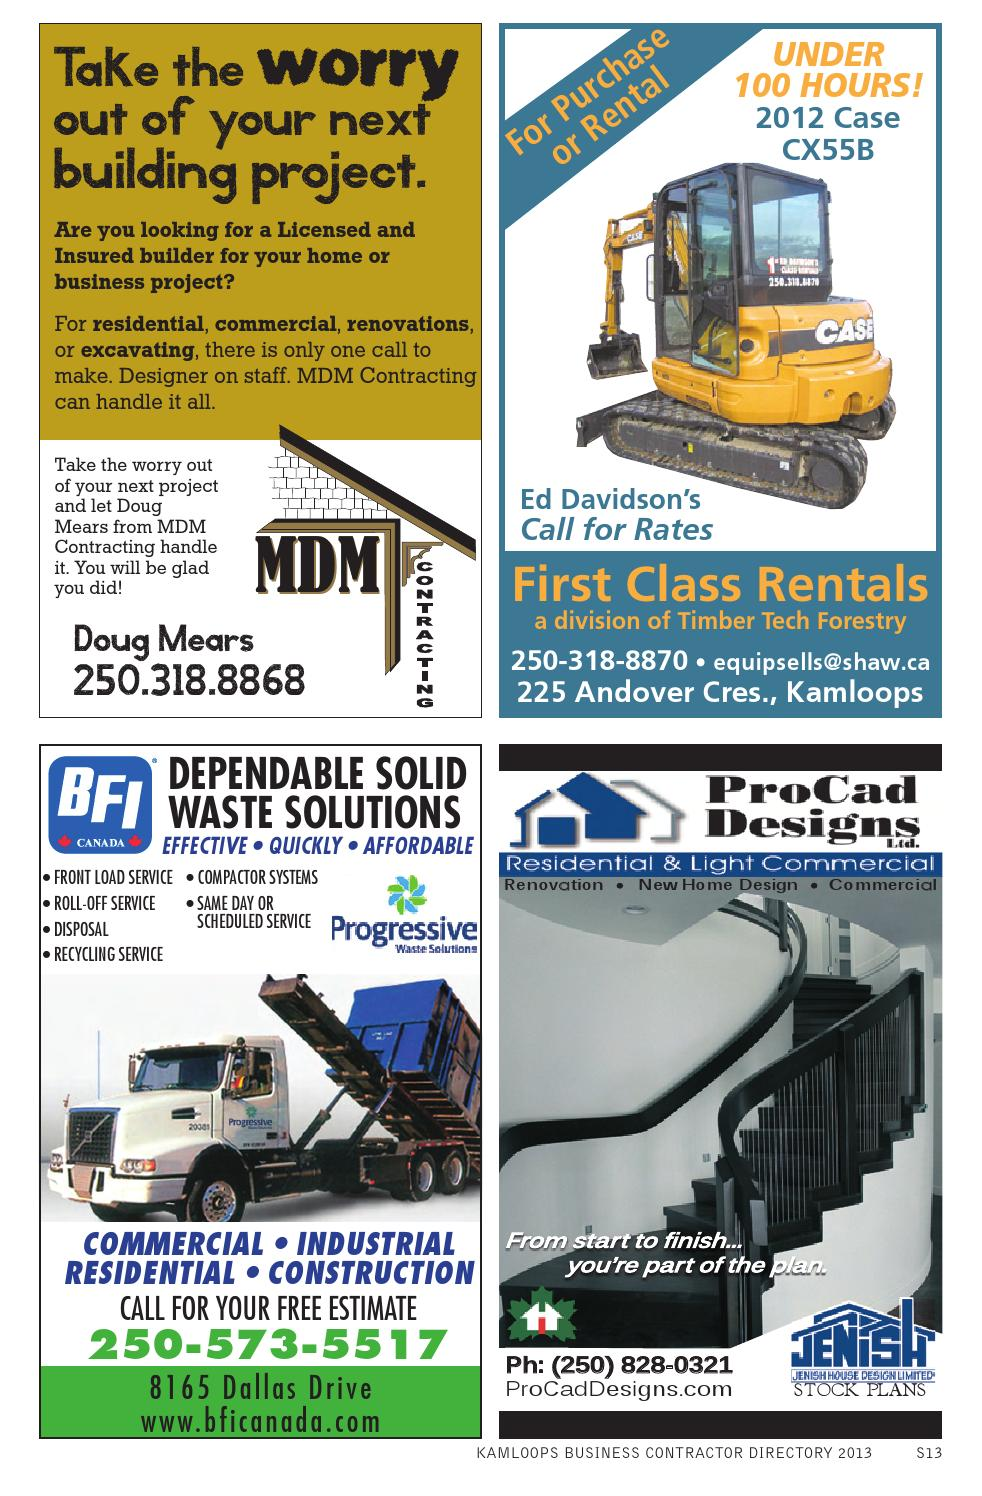 Contractor directory 2013 by Kamloops Daily News - issuu